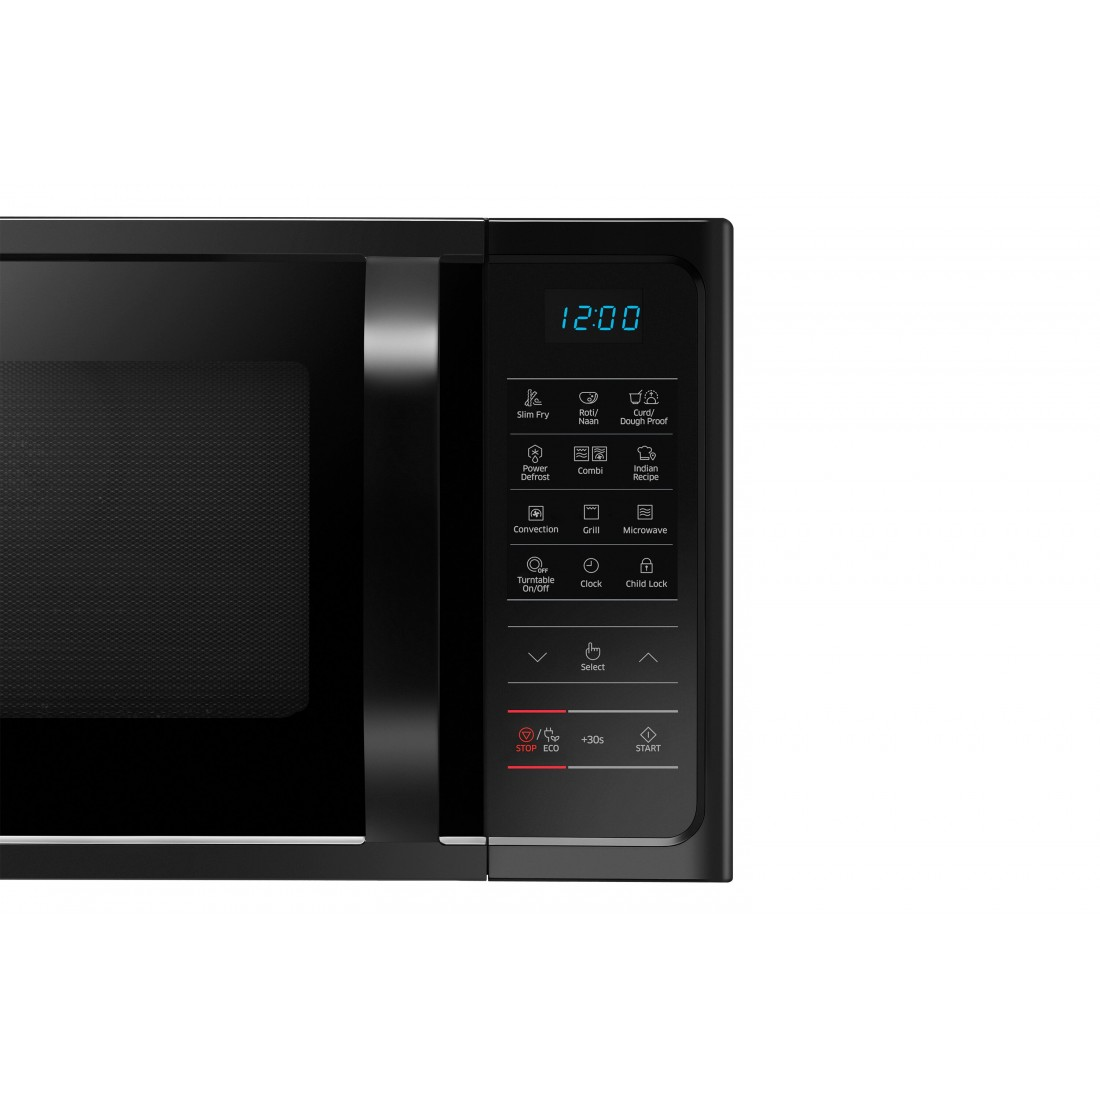 28 Litres Convection Microwave Oven